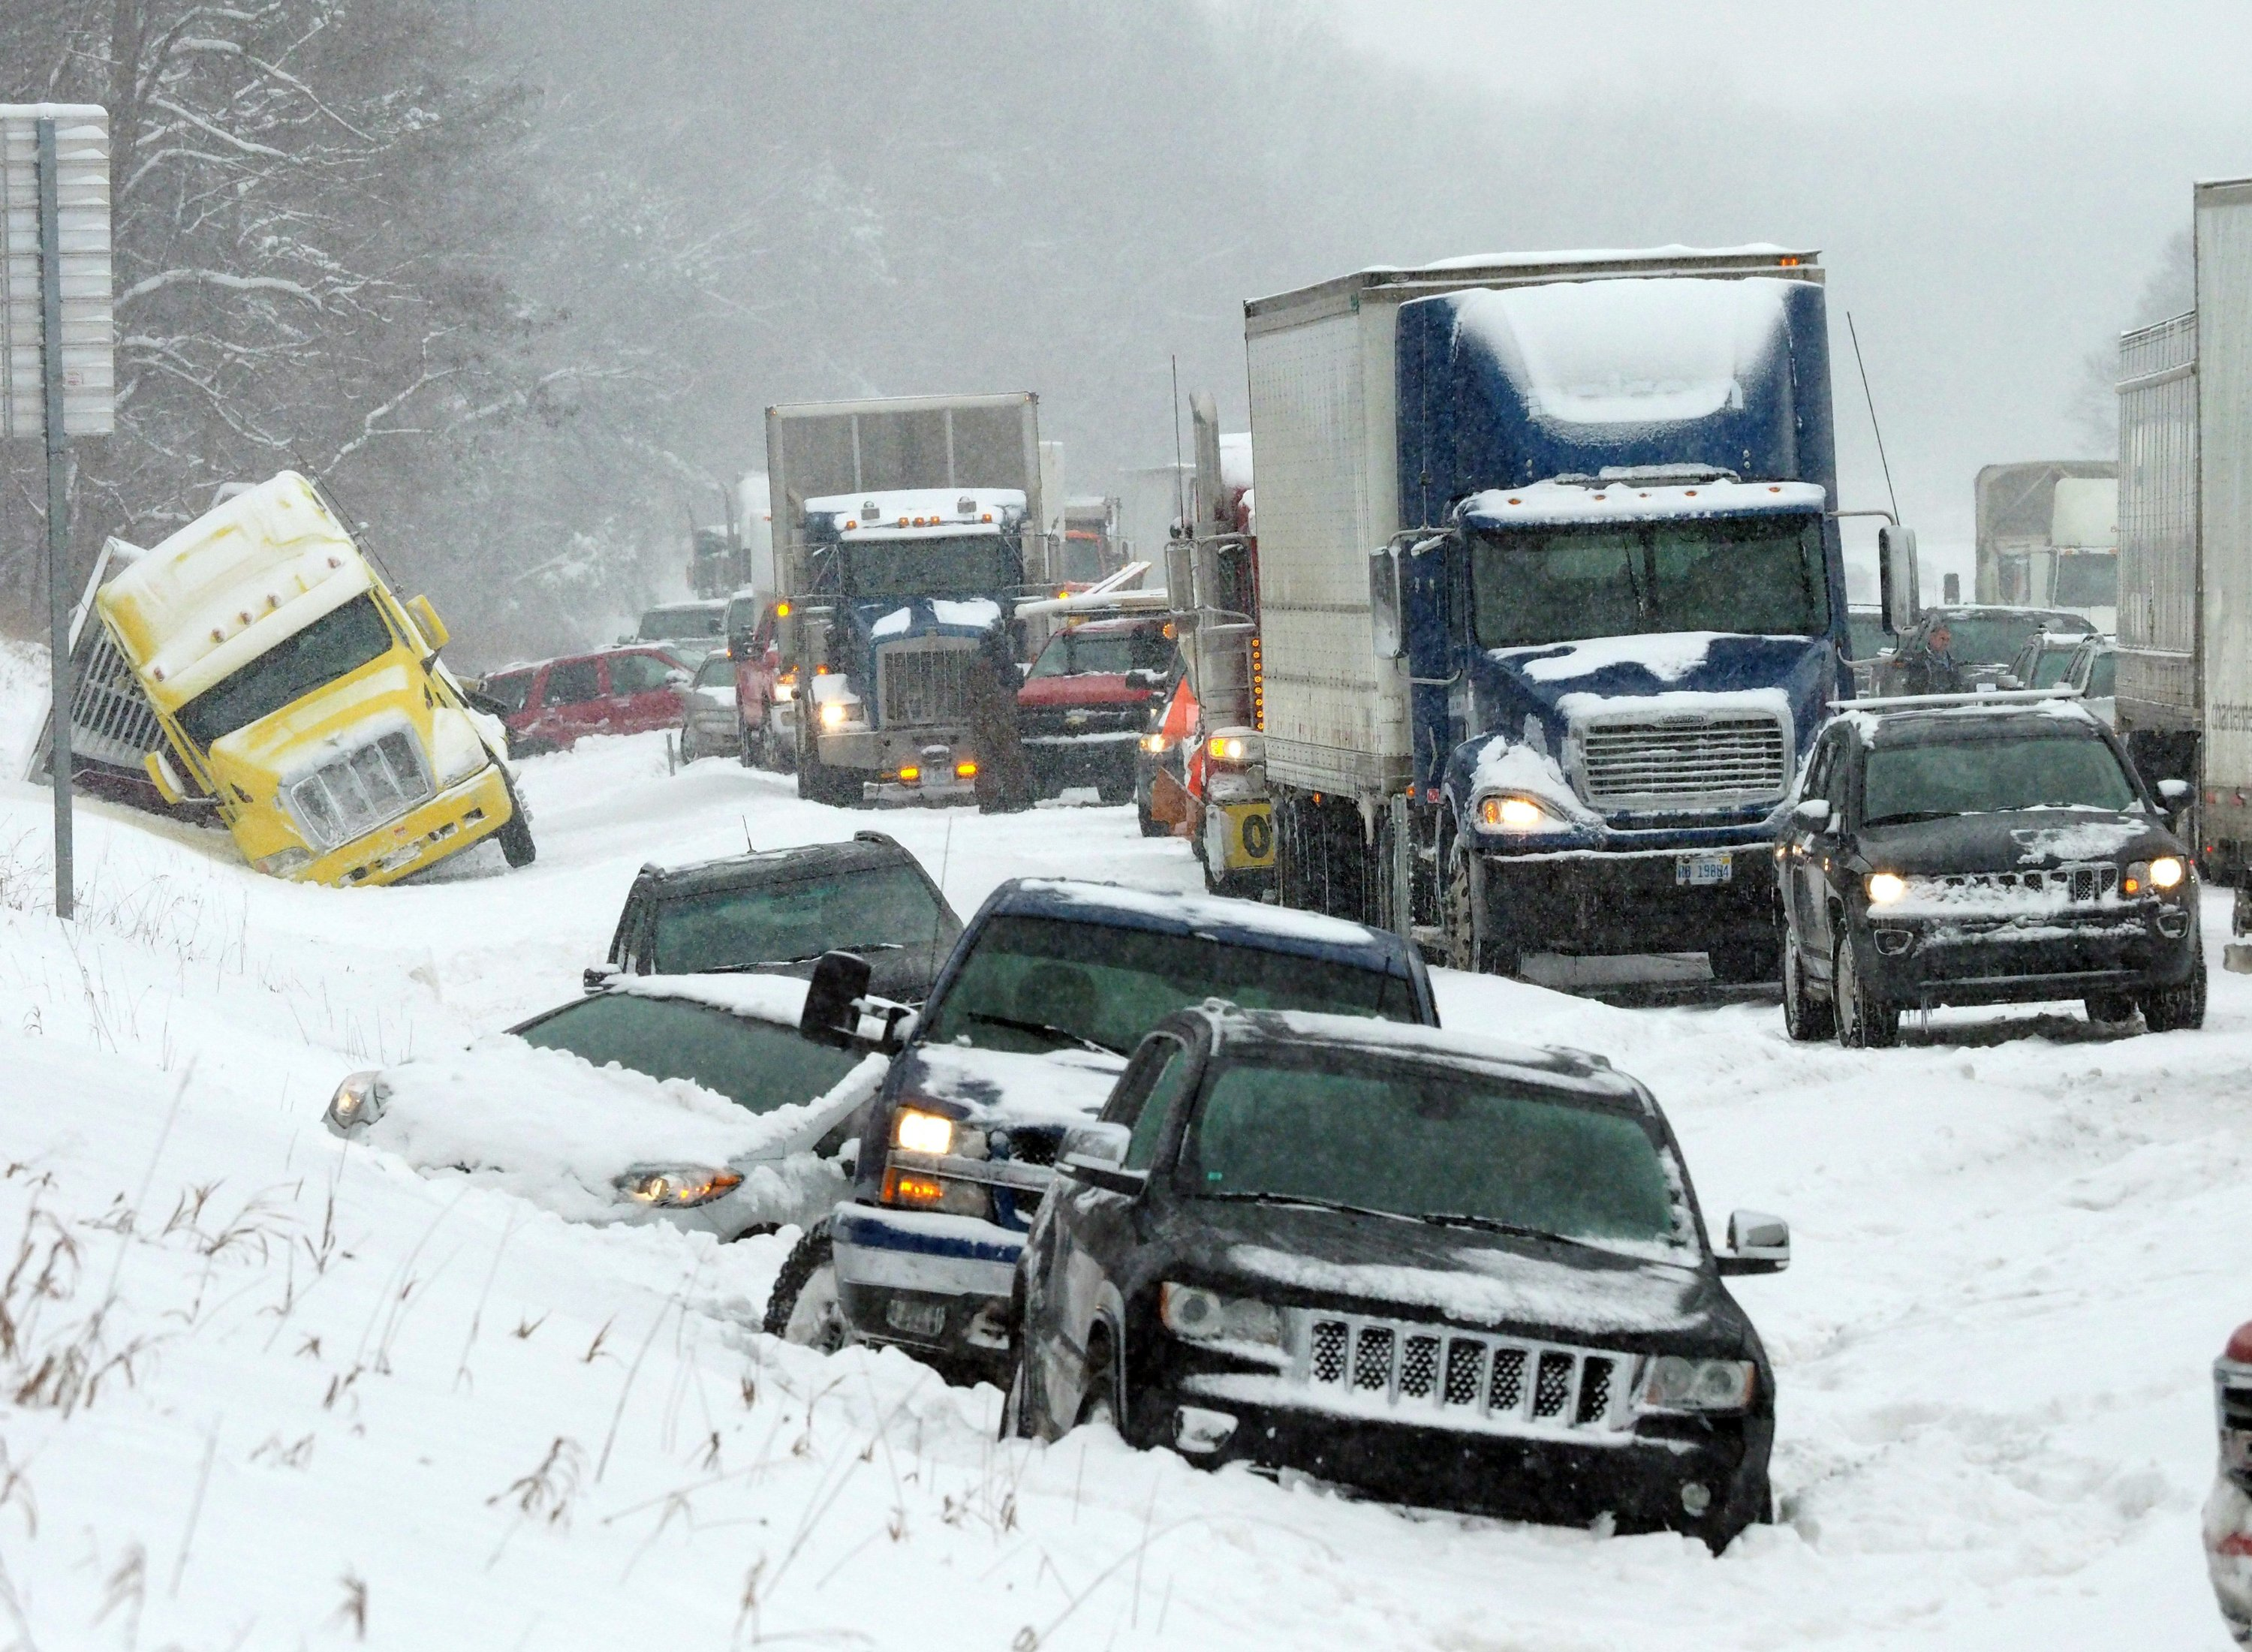 Winter storm pounding Midwest blamed for 2 deaths